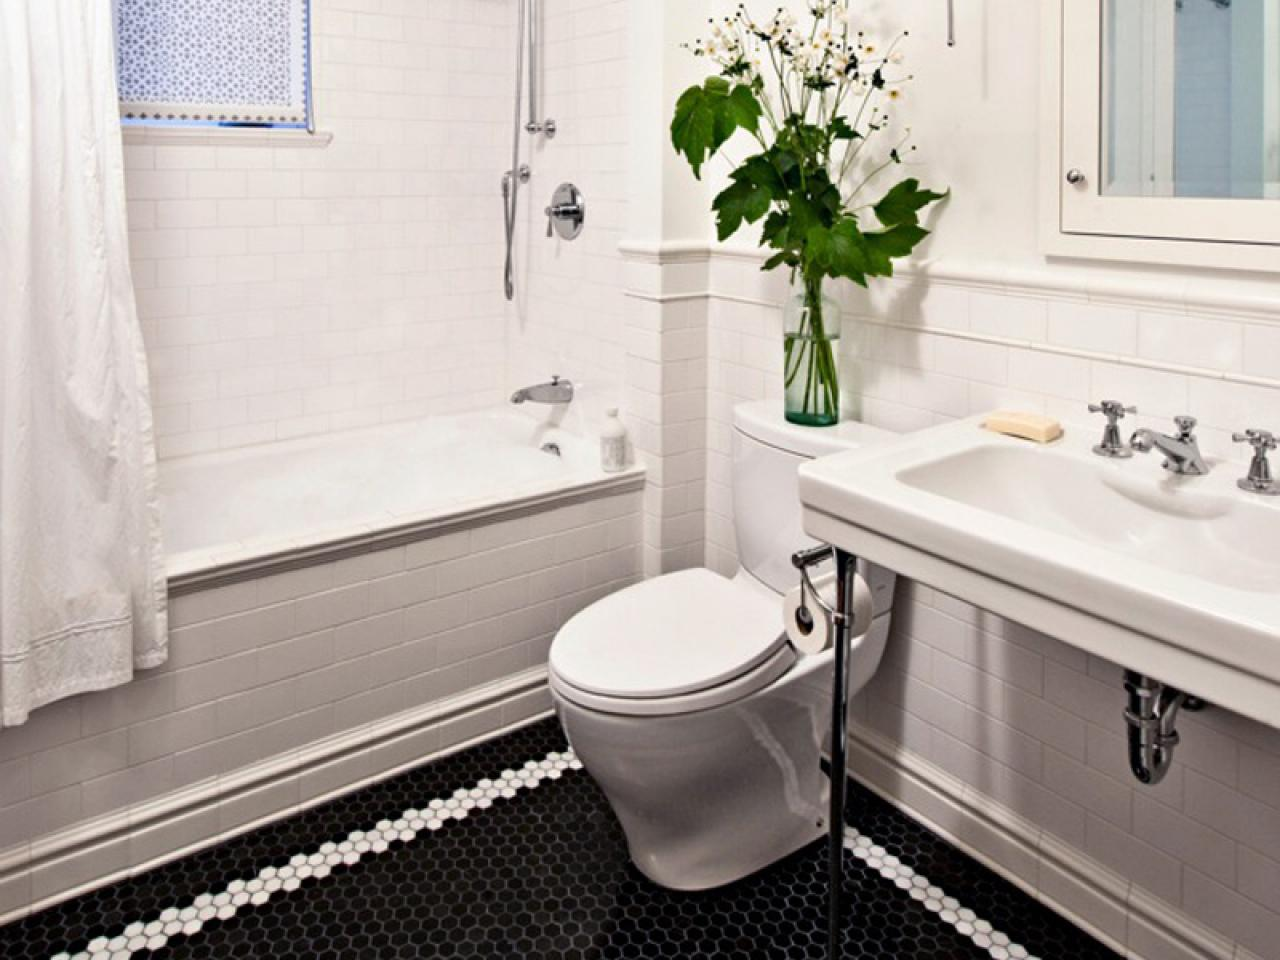 23 nice ideas and pictures of basketweave bathroom tile White border tiles bathrooms